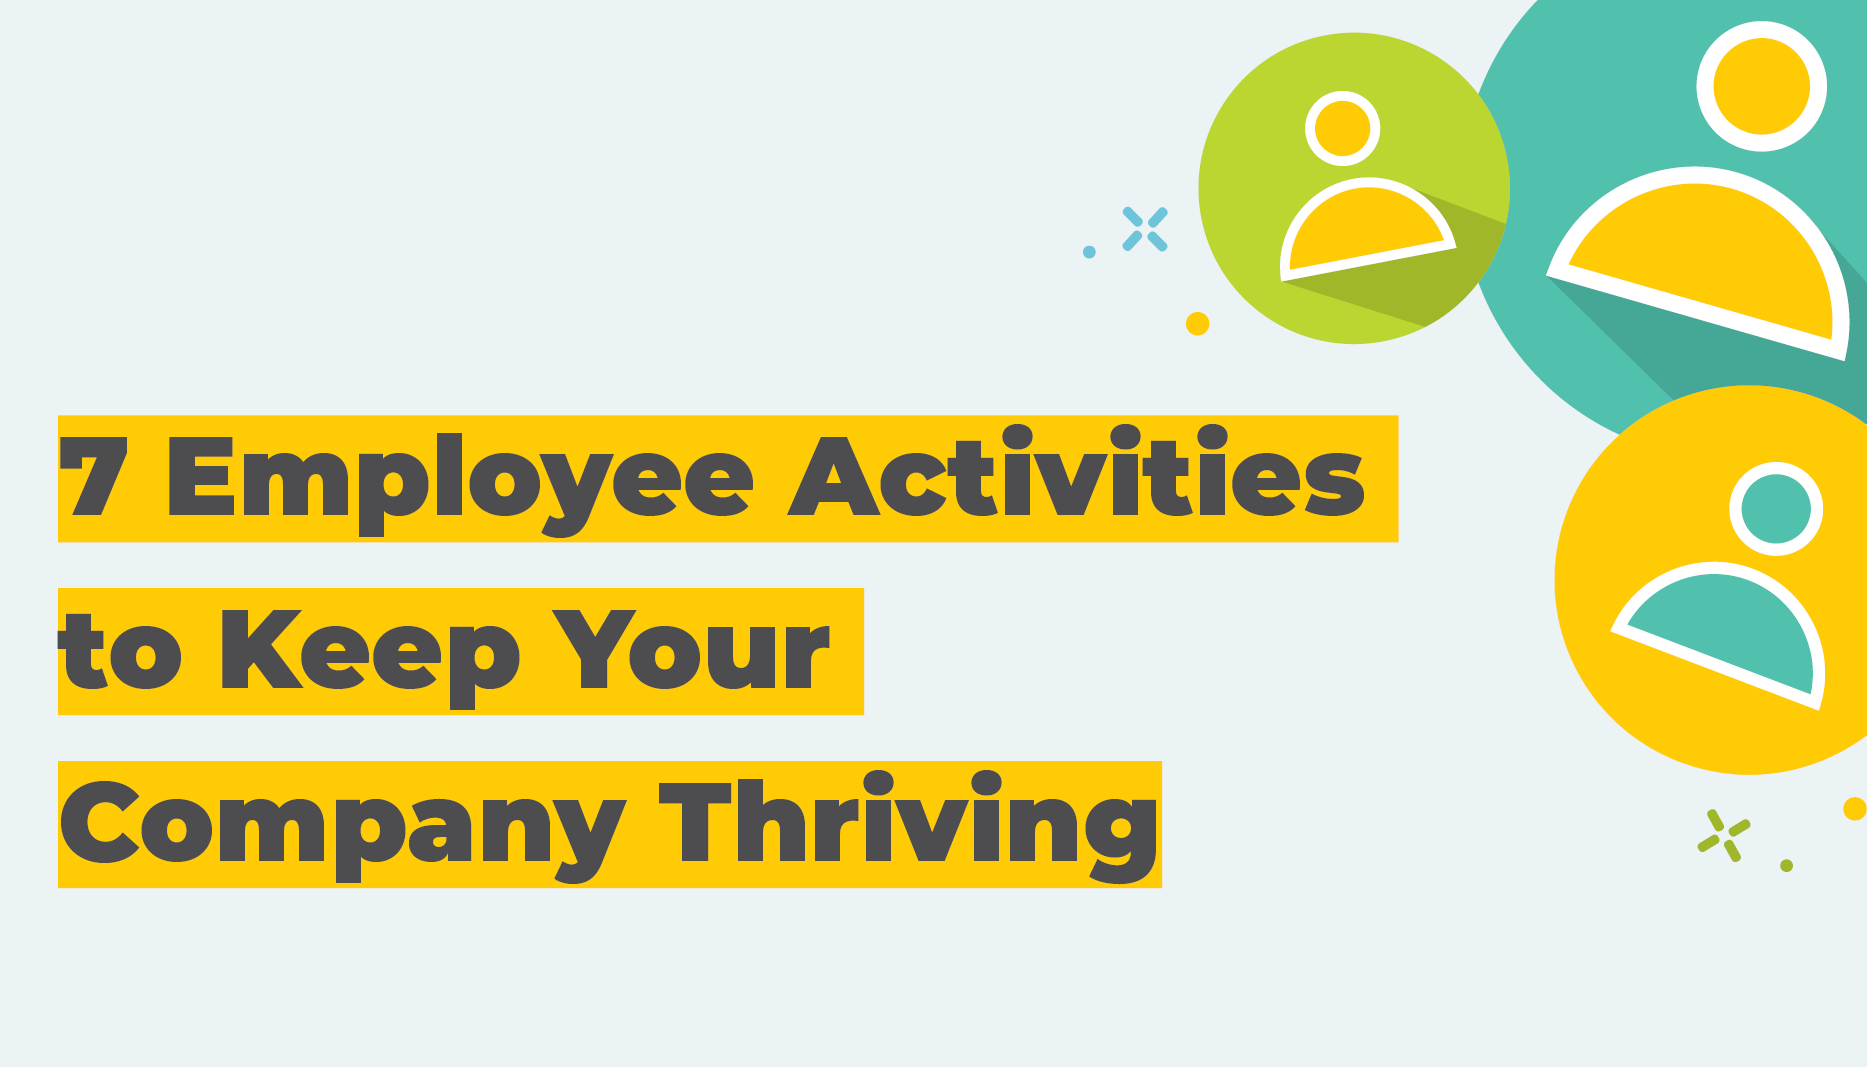 7 Employee Wellness Activities to Keep Your Company Thriving | Employee Wellness Activities | Benefits by Design